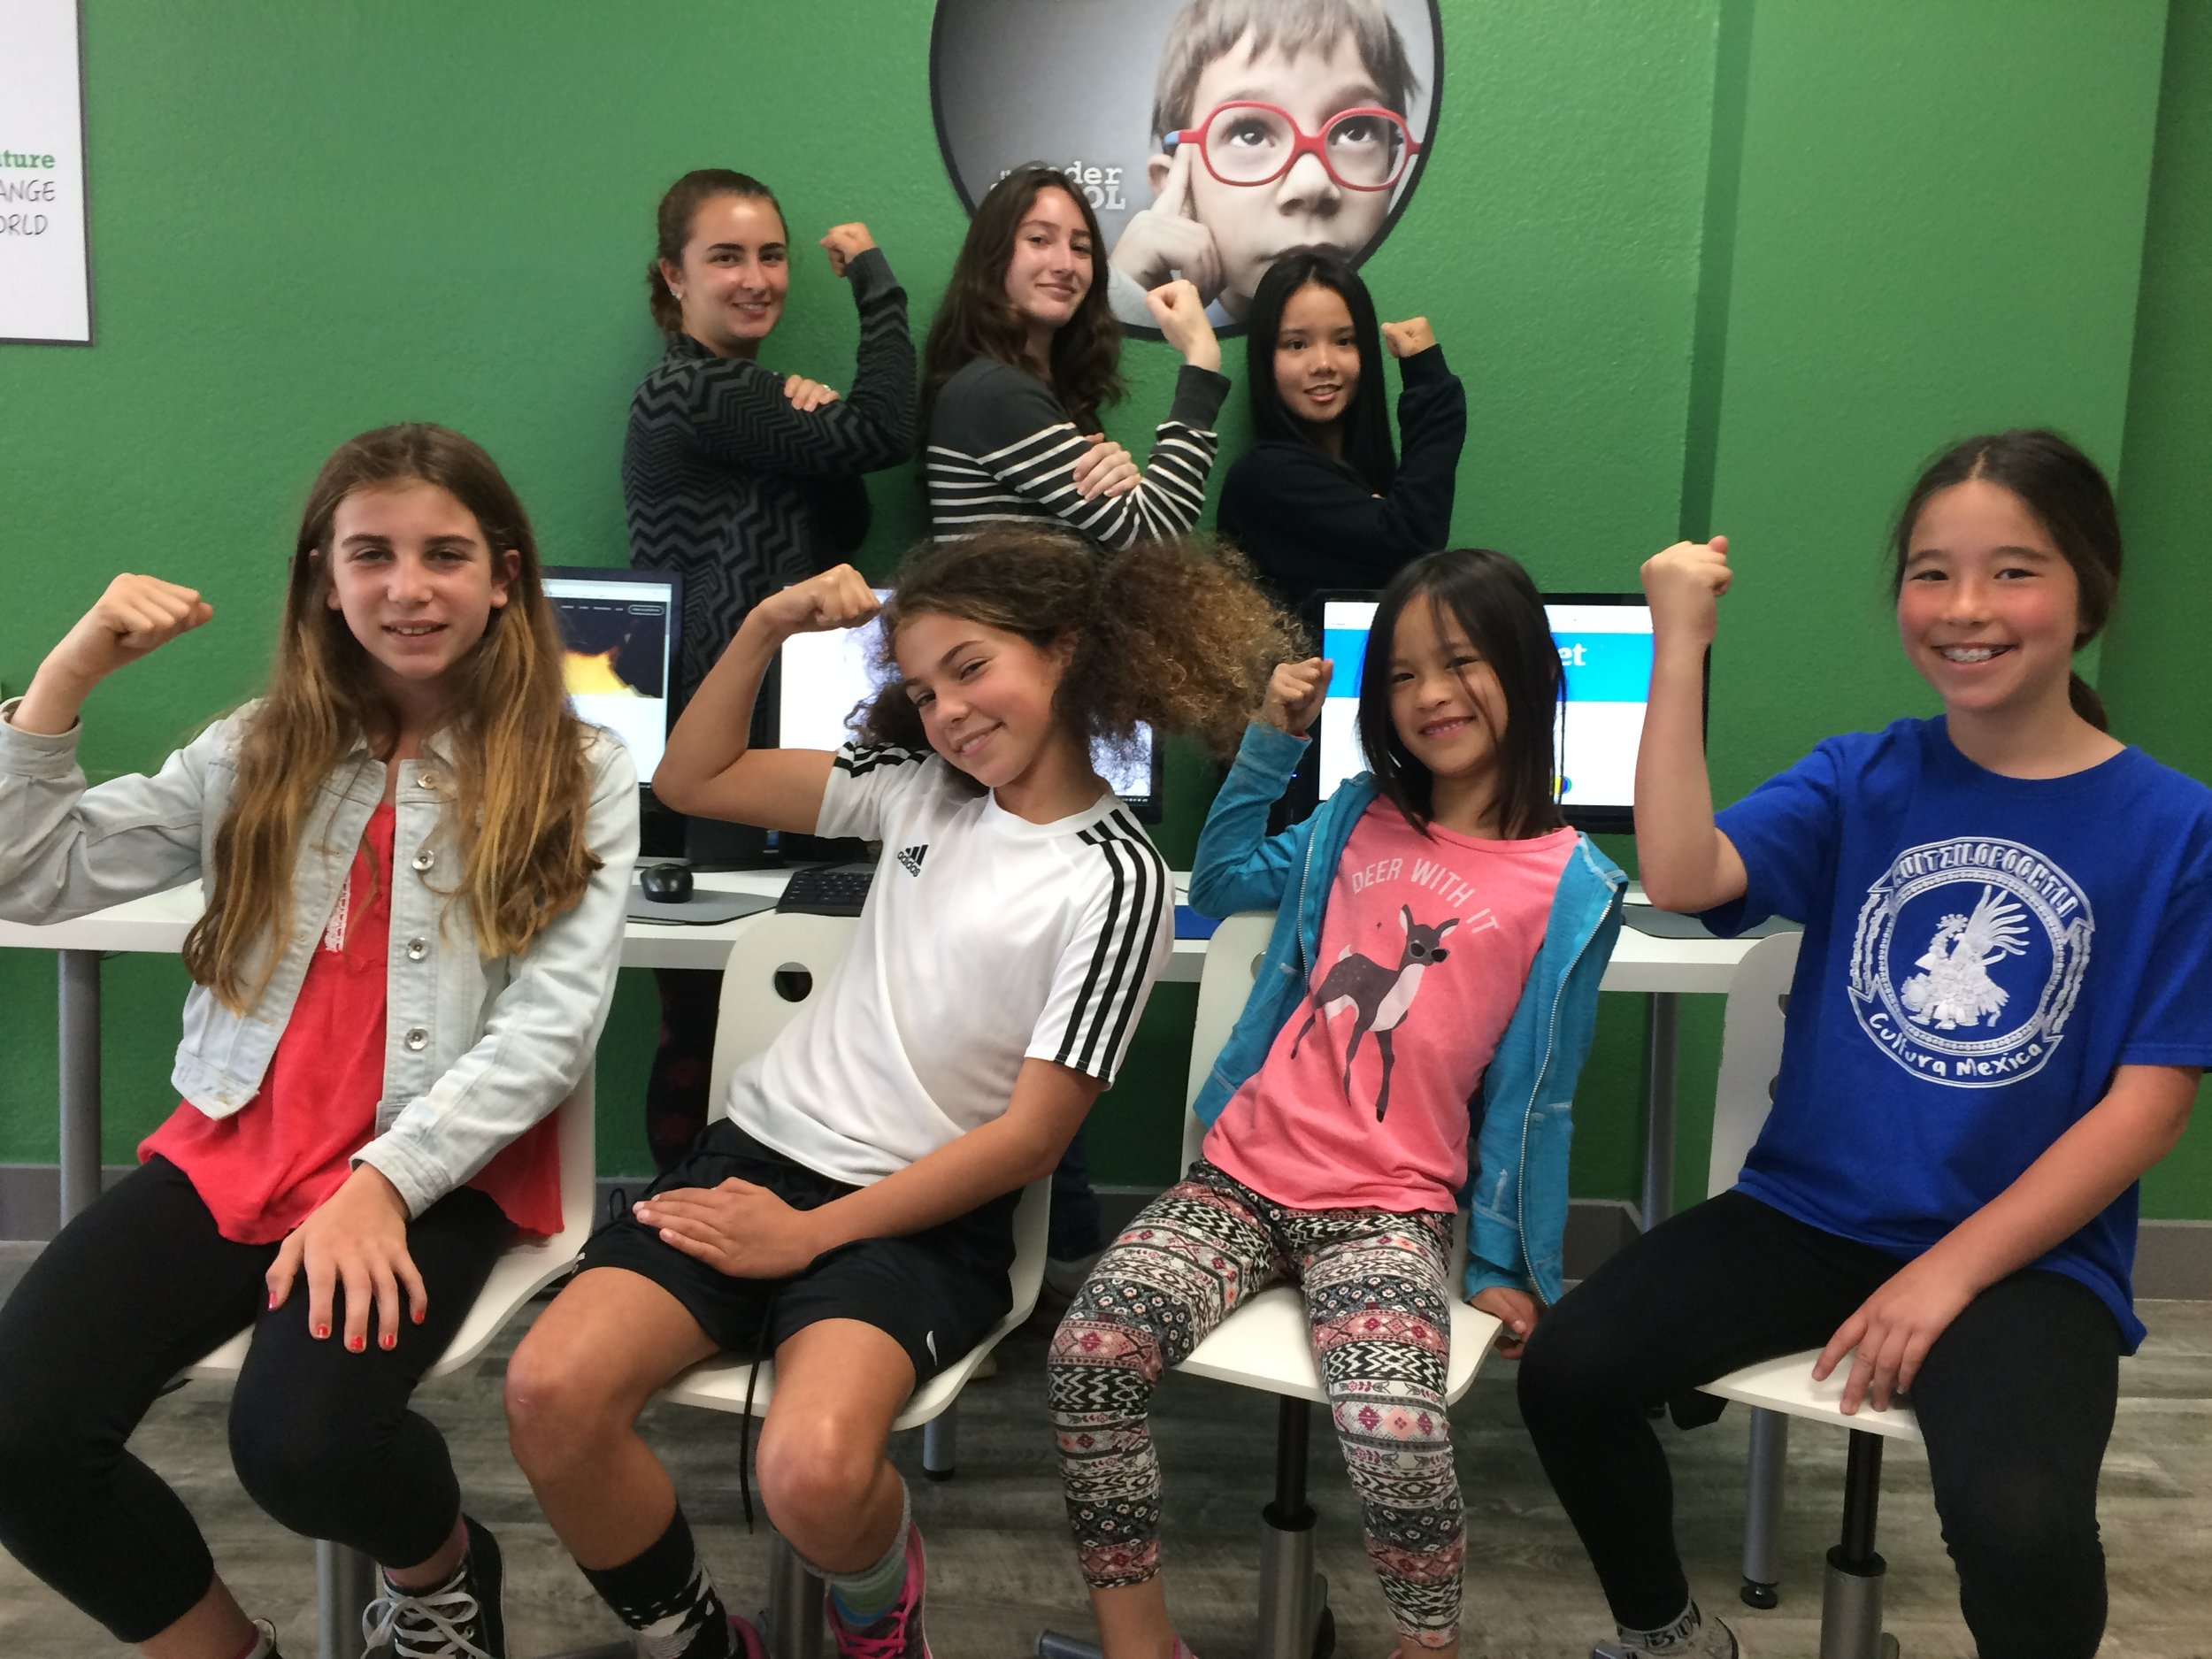 """""""We Can Do It!"""" A majority of the instructors at The Coder School in West Portal are women. They want to inspire girls to pursue tech careers."""